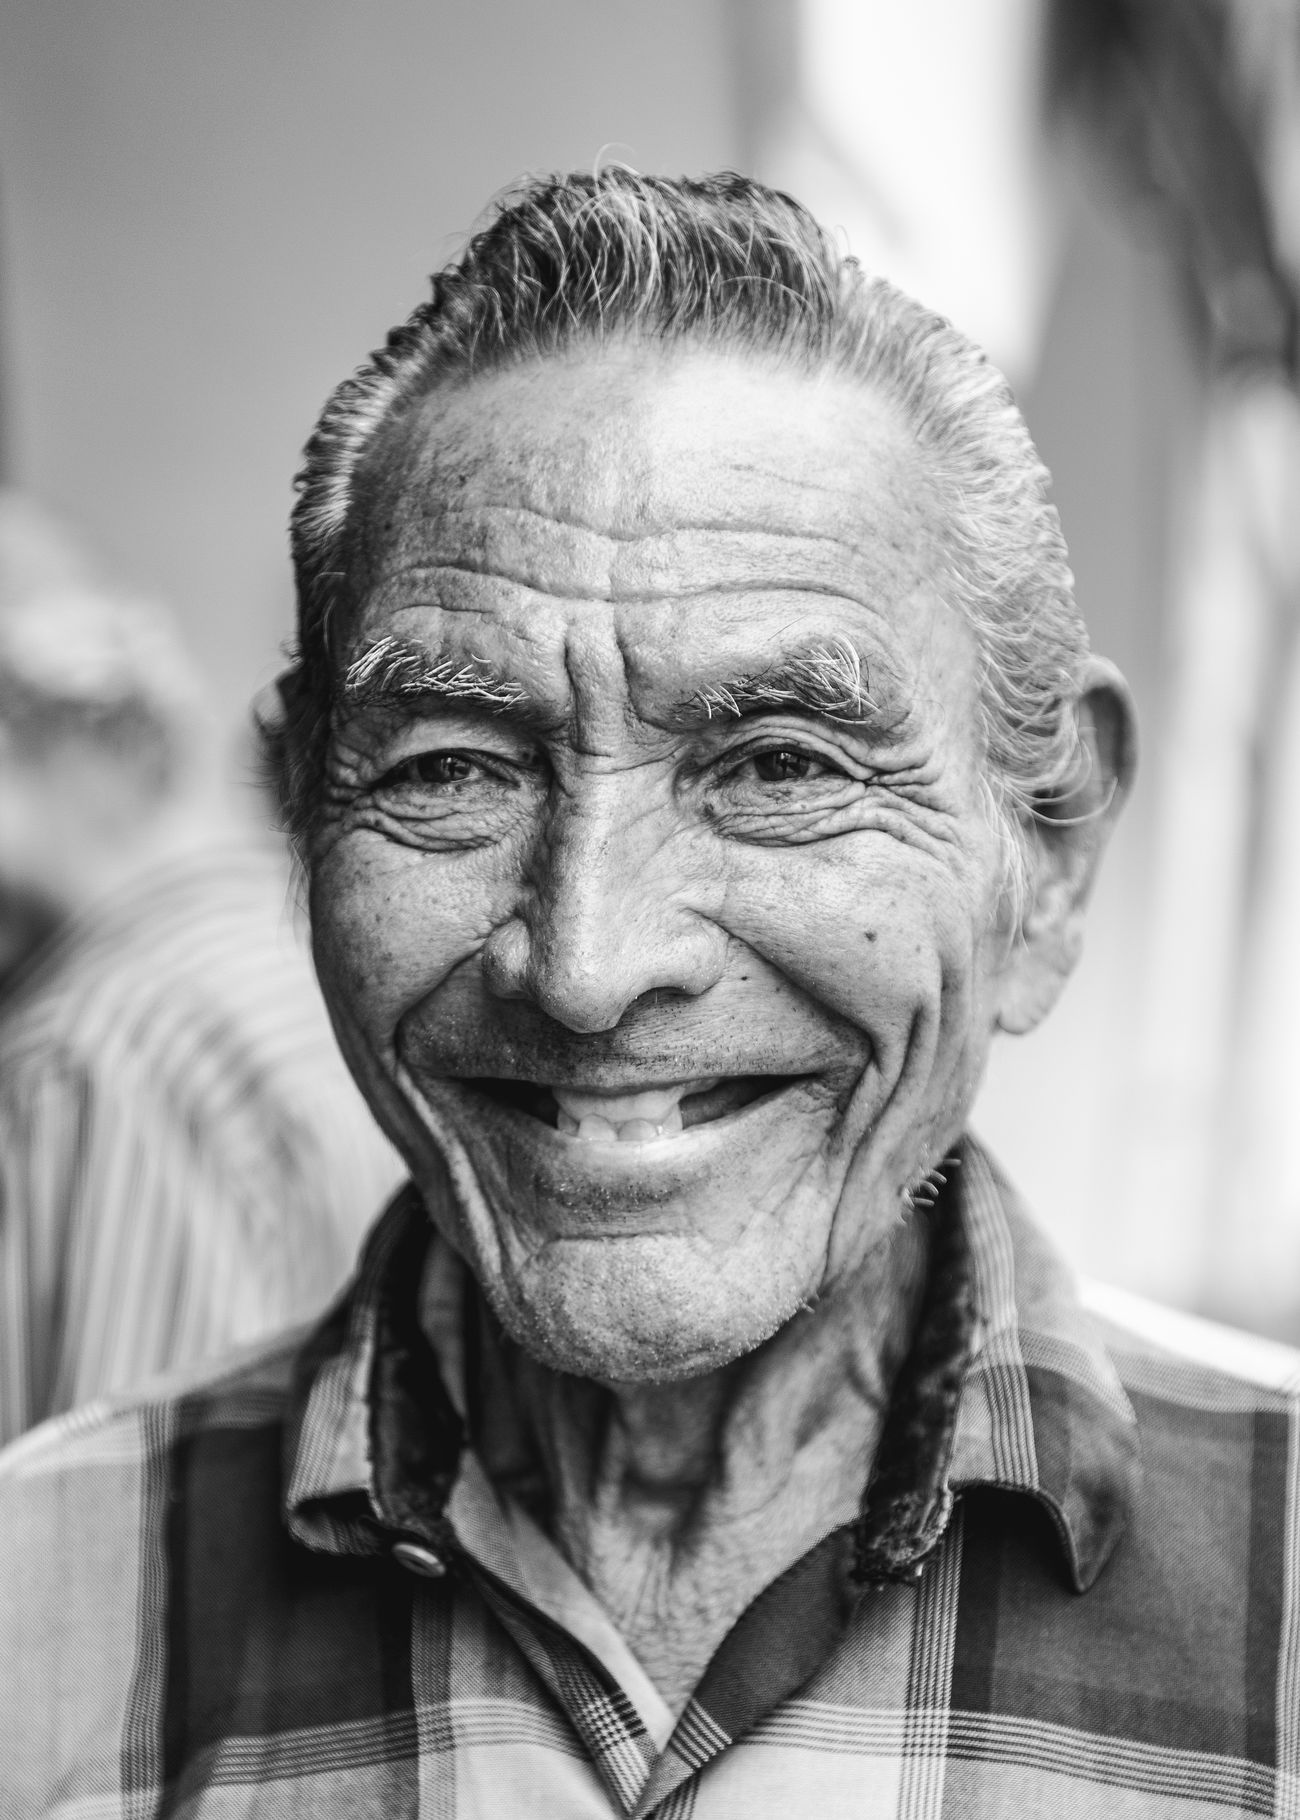 Candid Candid Photography Candid Portraits Casual Clothing Close-up Confidence  Day Focus On Foreground Front View Happiness ♡ Headshot Human Face Joy Leisure Activity Lifestyles Mexico Old Man Outdoors Portrait Smile Streetphotography Travel Travel Destinations Travel Photography